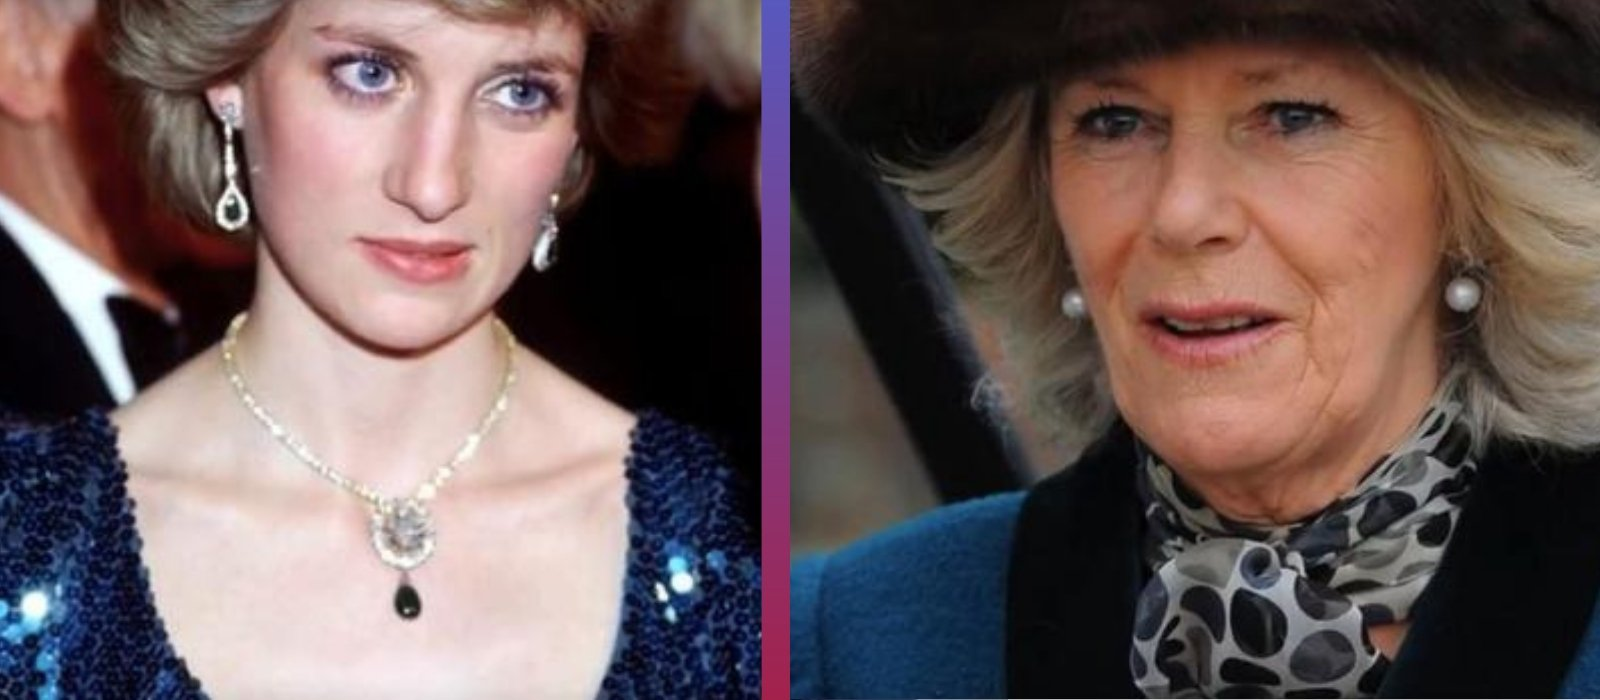 Camilla Parker-Bowles Has Redesigned A Necklace Once Owned By Princess Diana | DÉCOR RARO